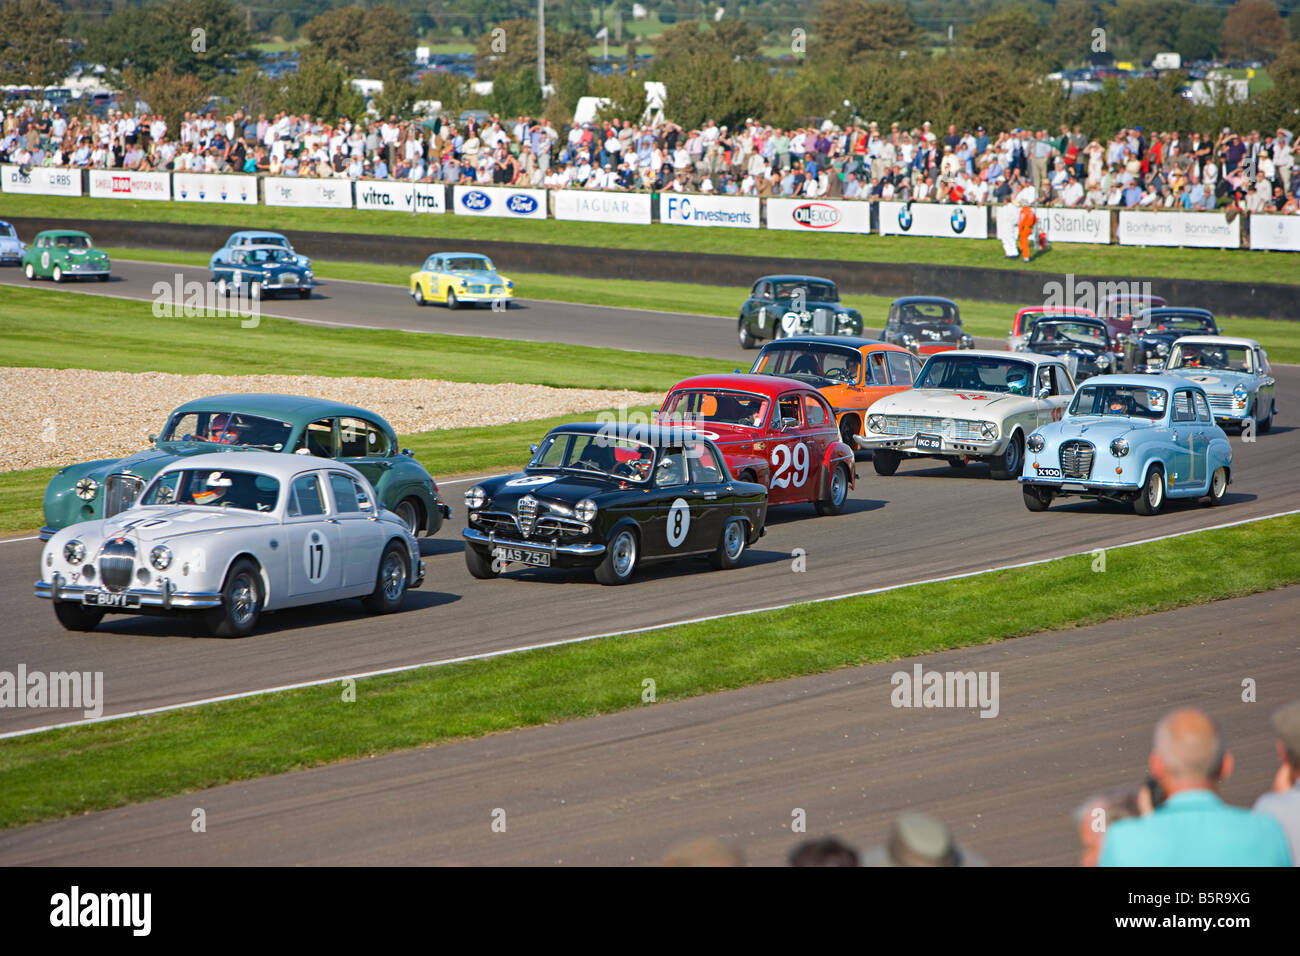 Oldtimer-Rennen in Goodwood Revival, Goodwood, West Sussex. Stockfoto